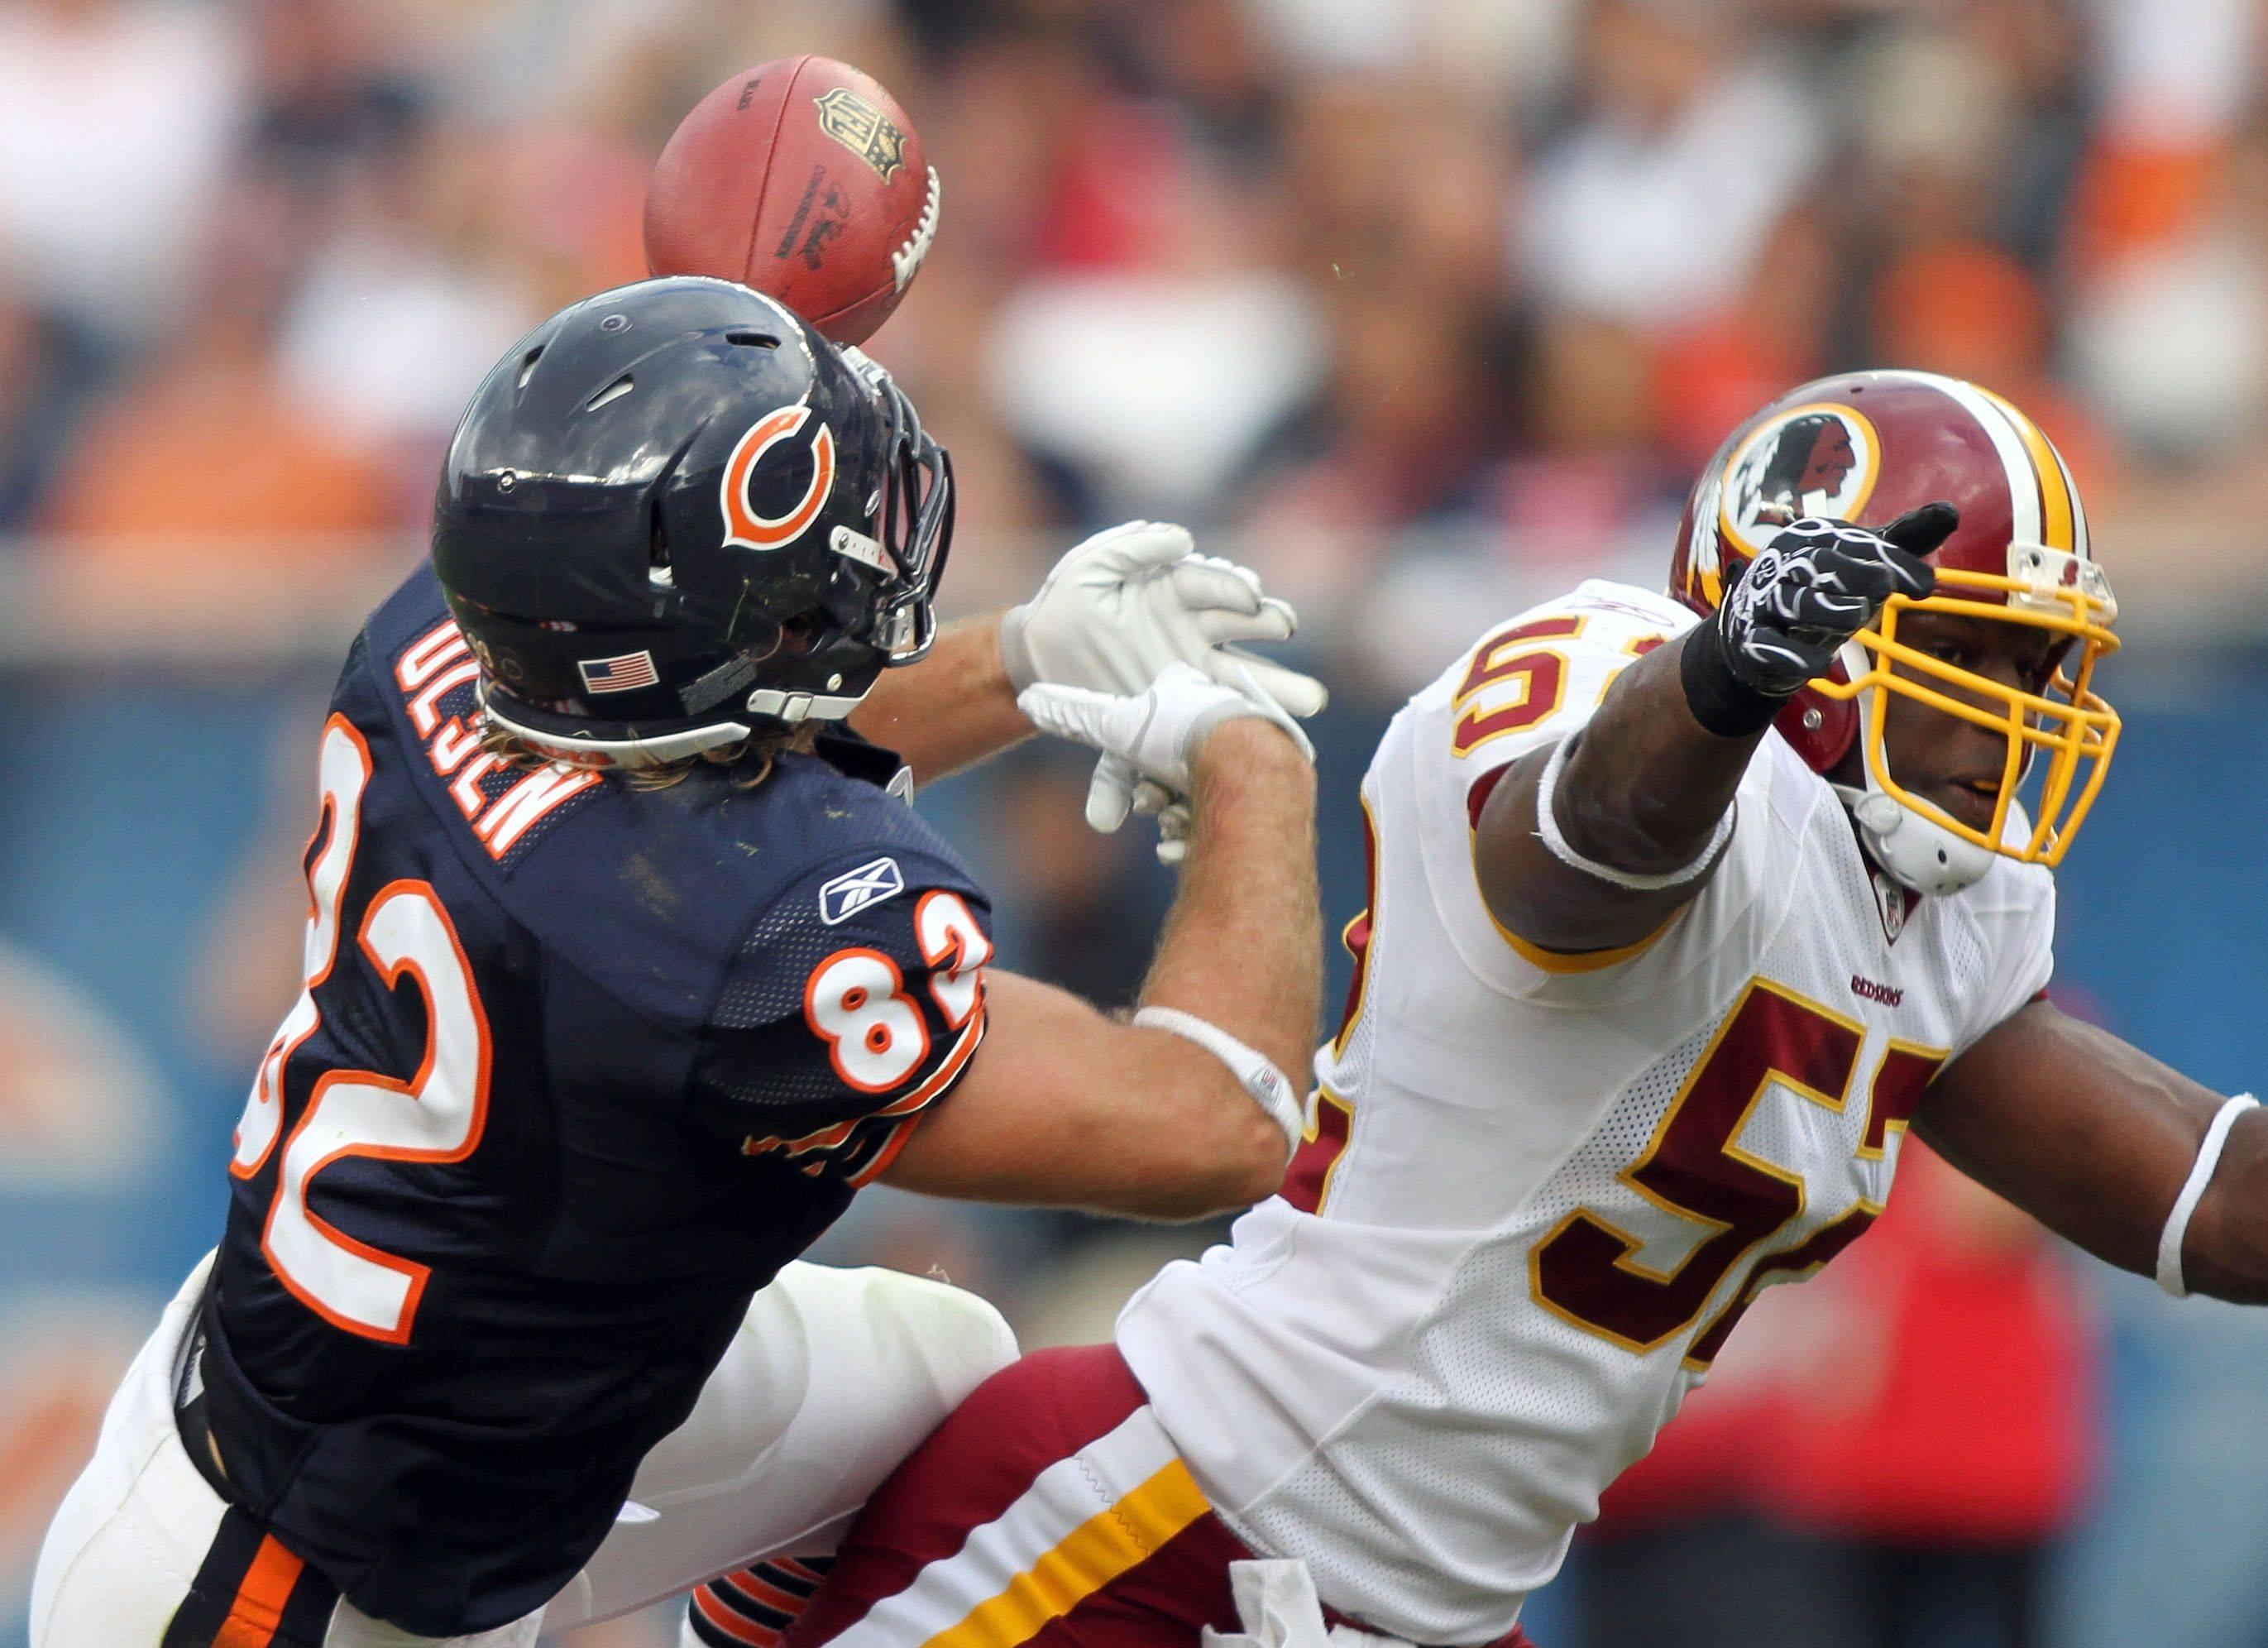 Chicago Bears tight end Greg Olsen makes a catch with Washington Redskins linebacker Rocky McIntosh defending during the Bears' 14-17 loss to the Redskins.